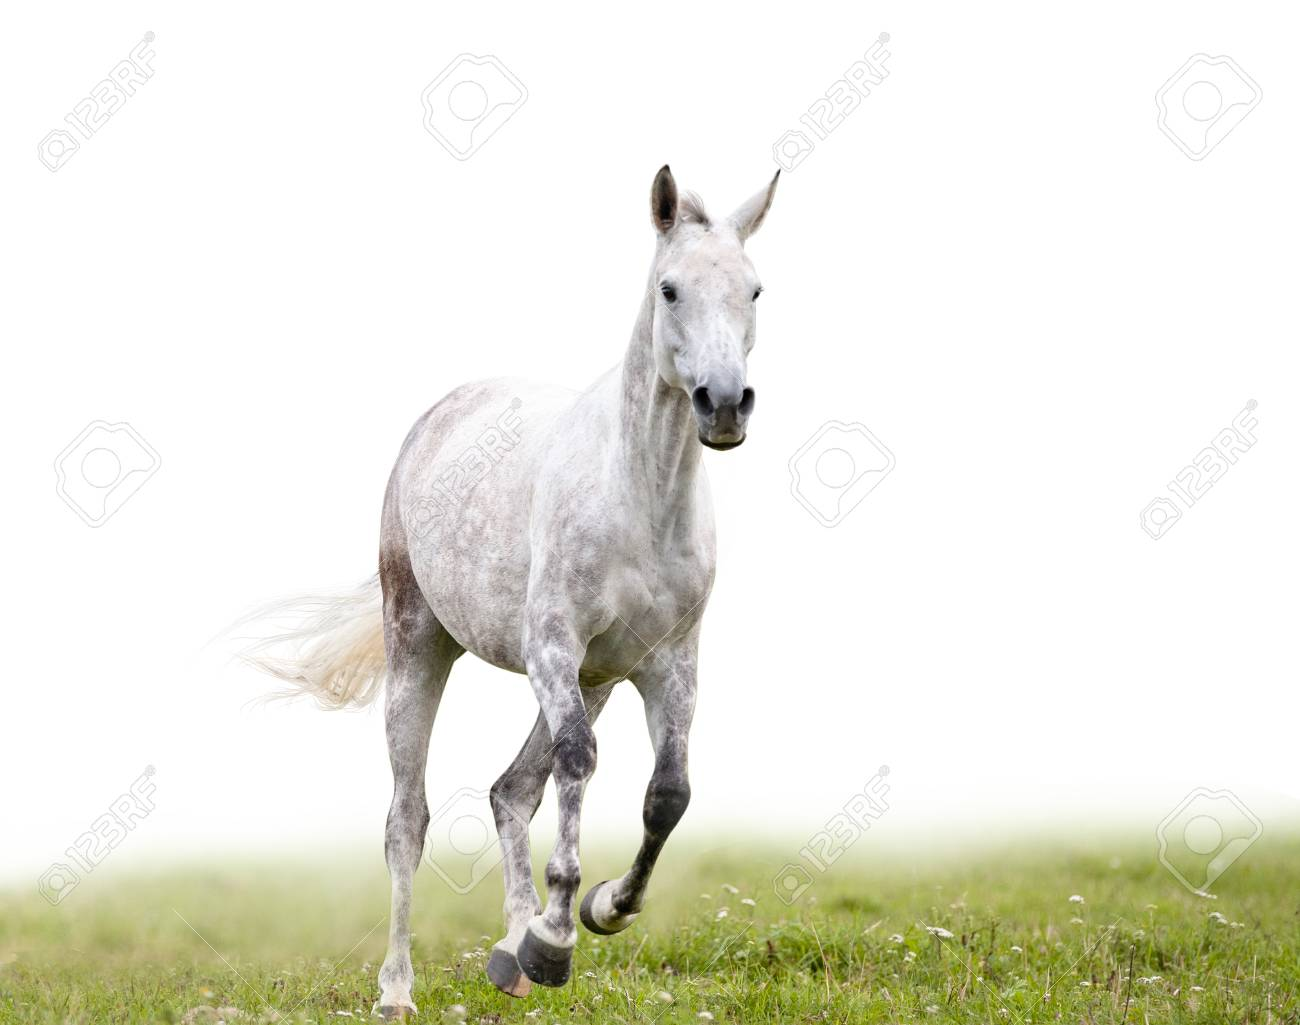 gray dapple horse runs in field isolated with white background